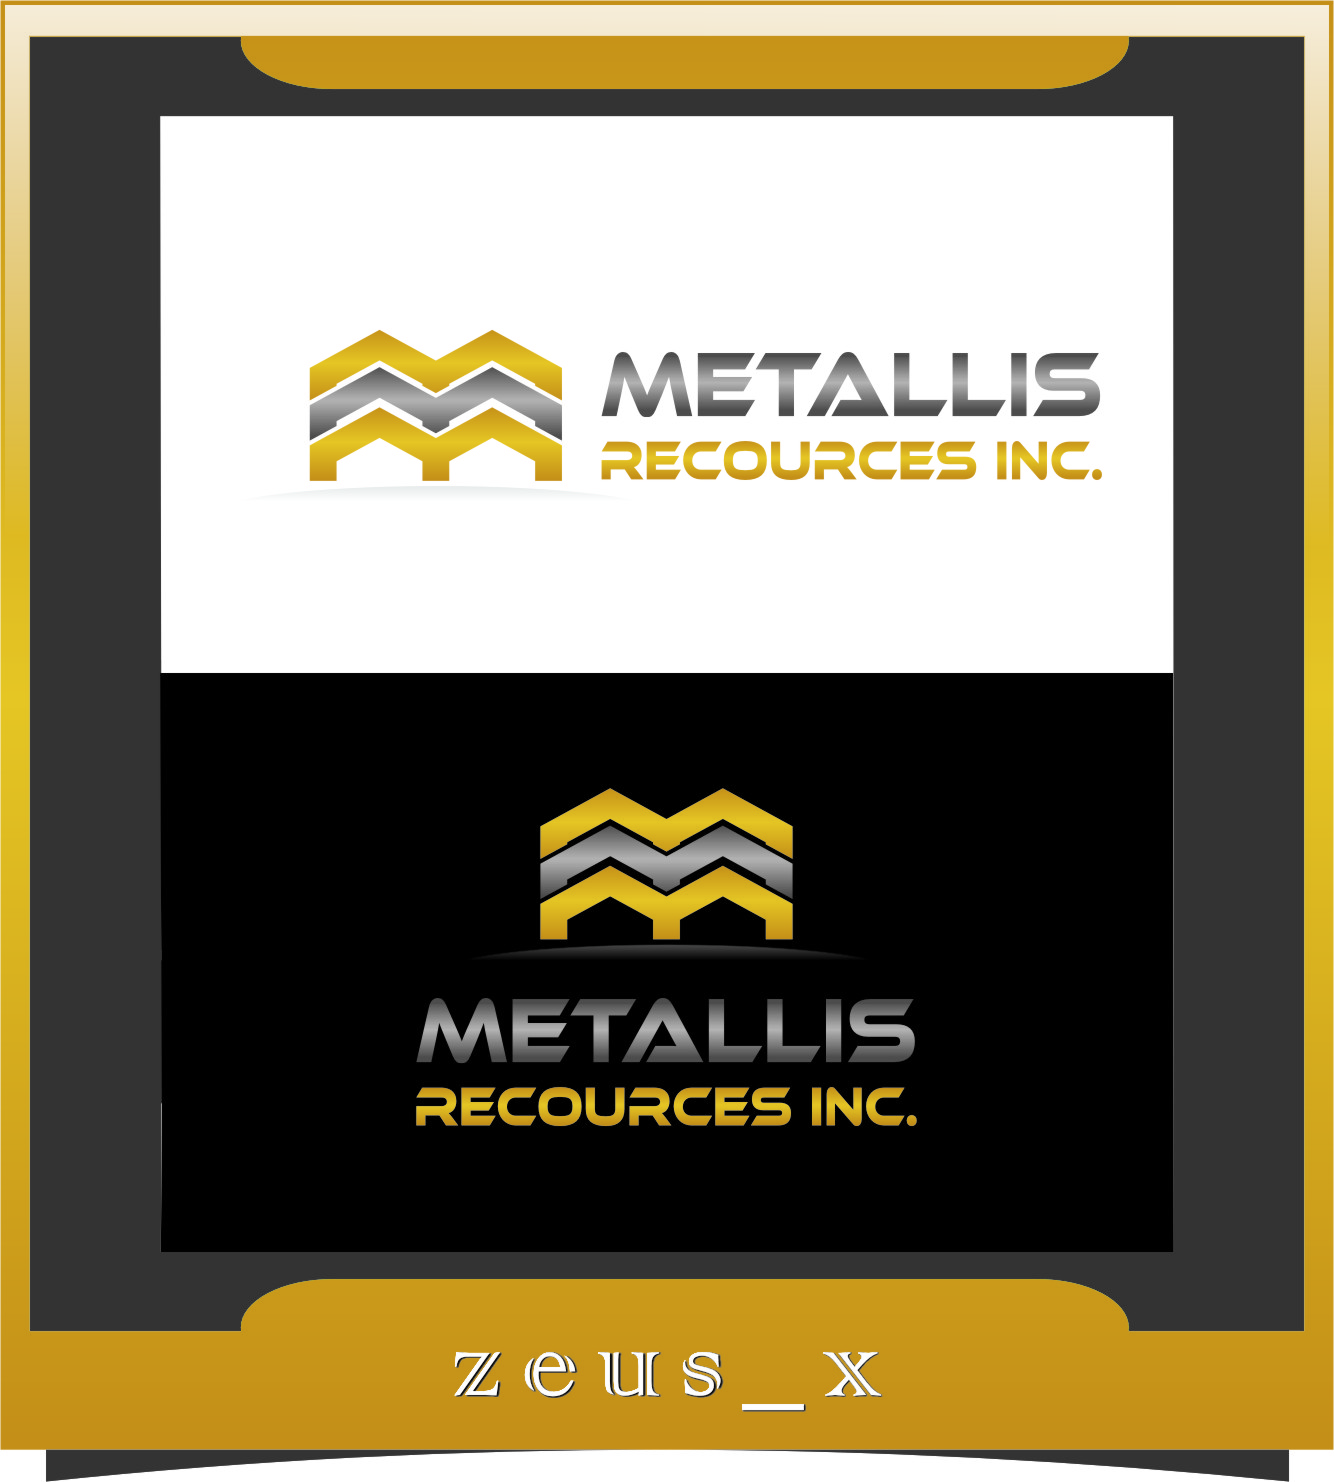 Logo Design by RasYa Muhammad Athaya - Entry No. 102 in the Logo Design Contest Metallis Resources Inc Logo Design.